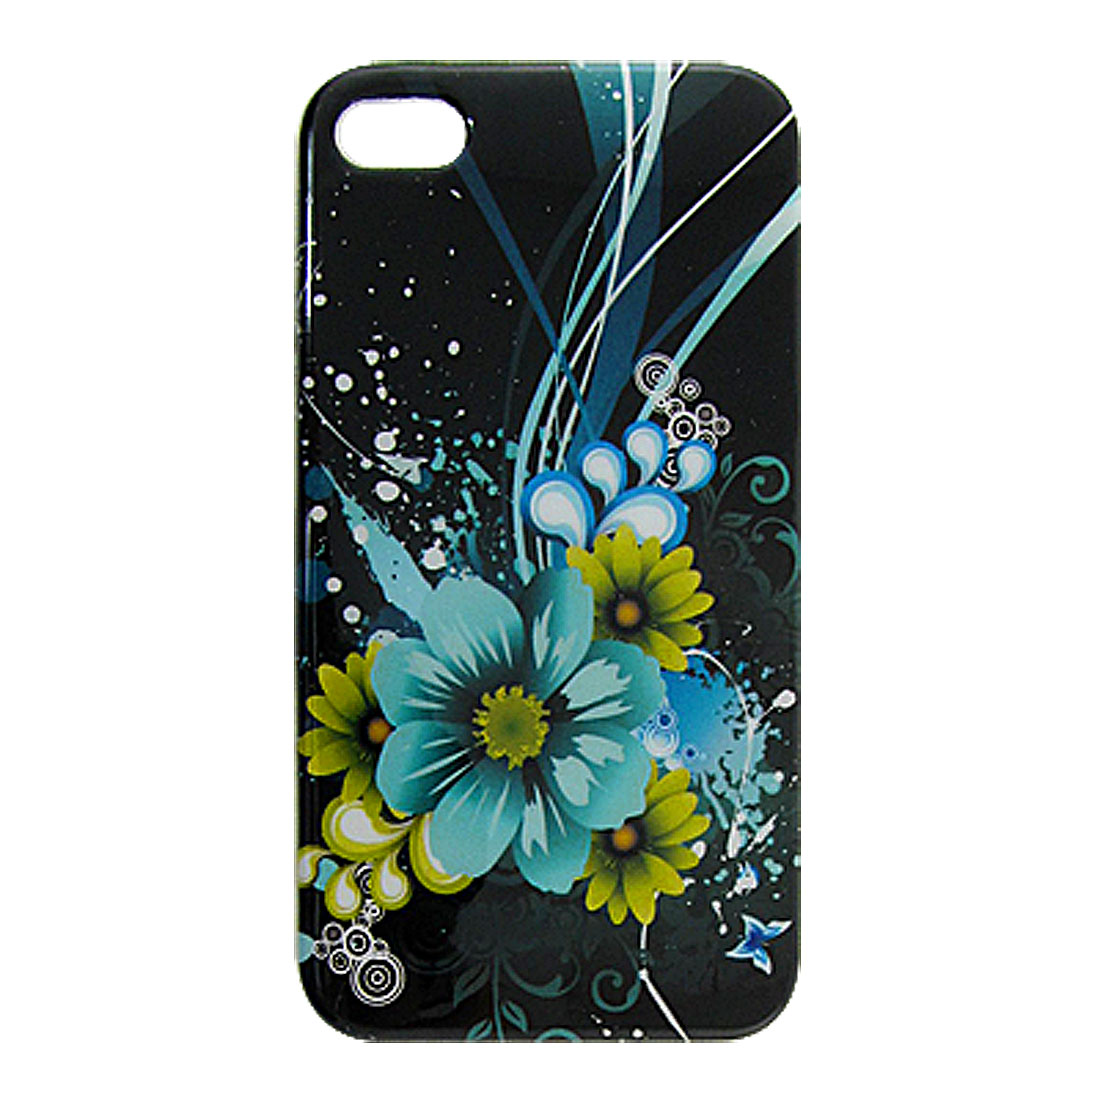 IMD Colorful Flower Pattern Back Case Cover Shell for iPhone 4 4G 4S